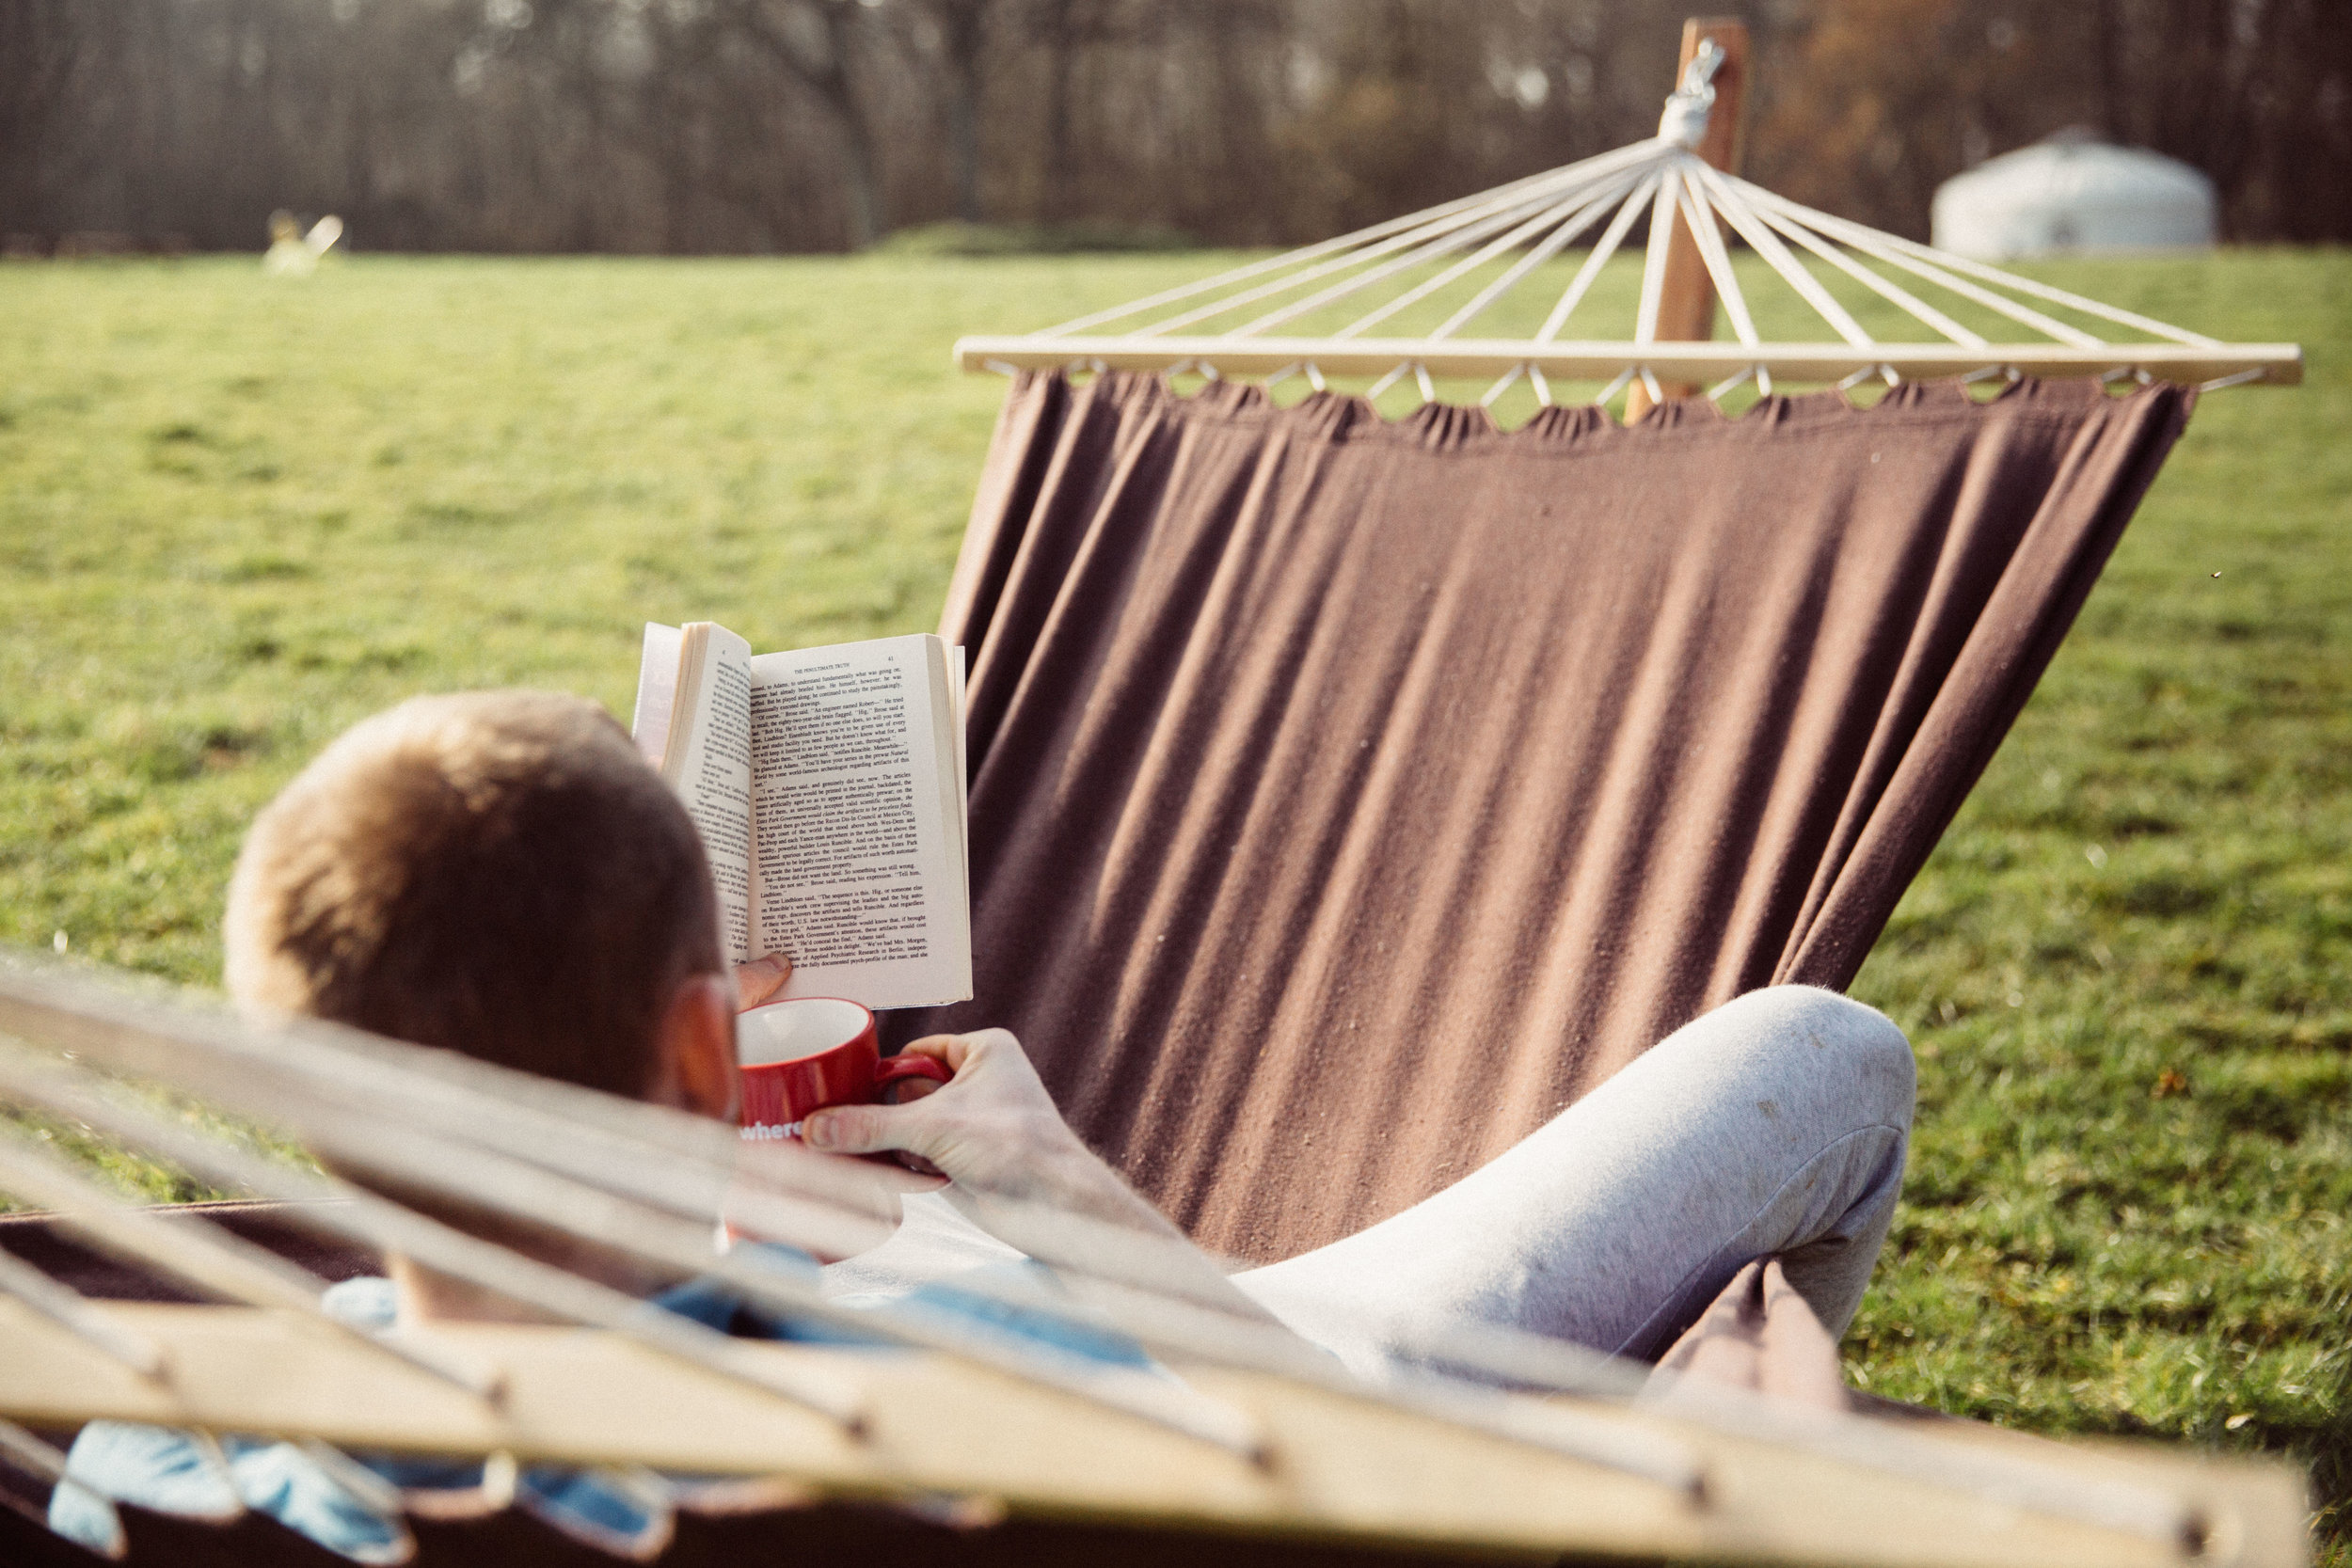 Relax in the hammock with a good book and a cup of tea